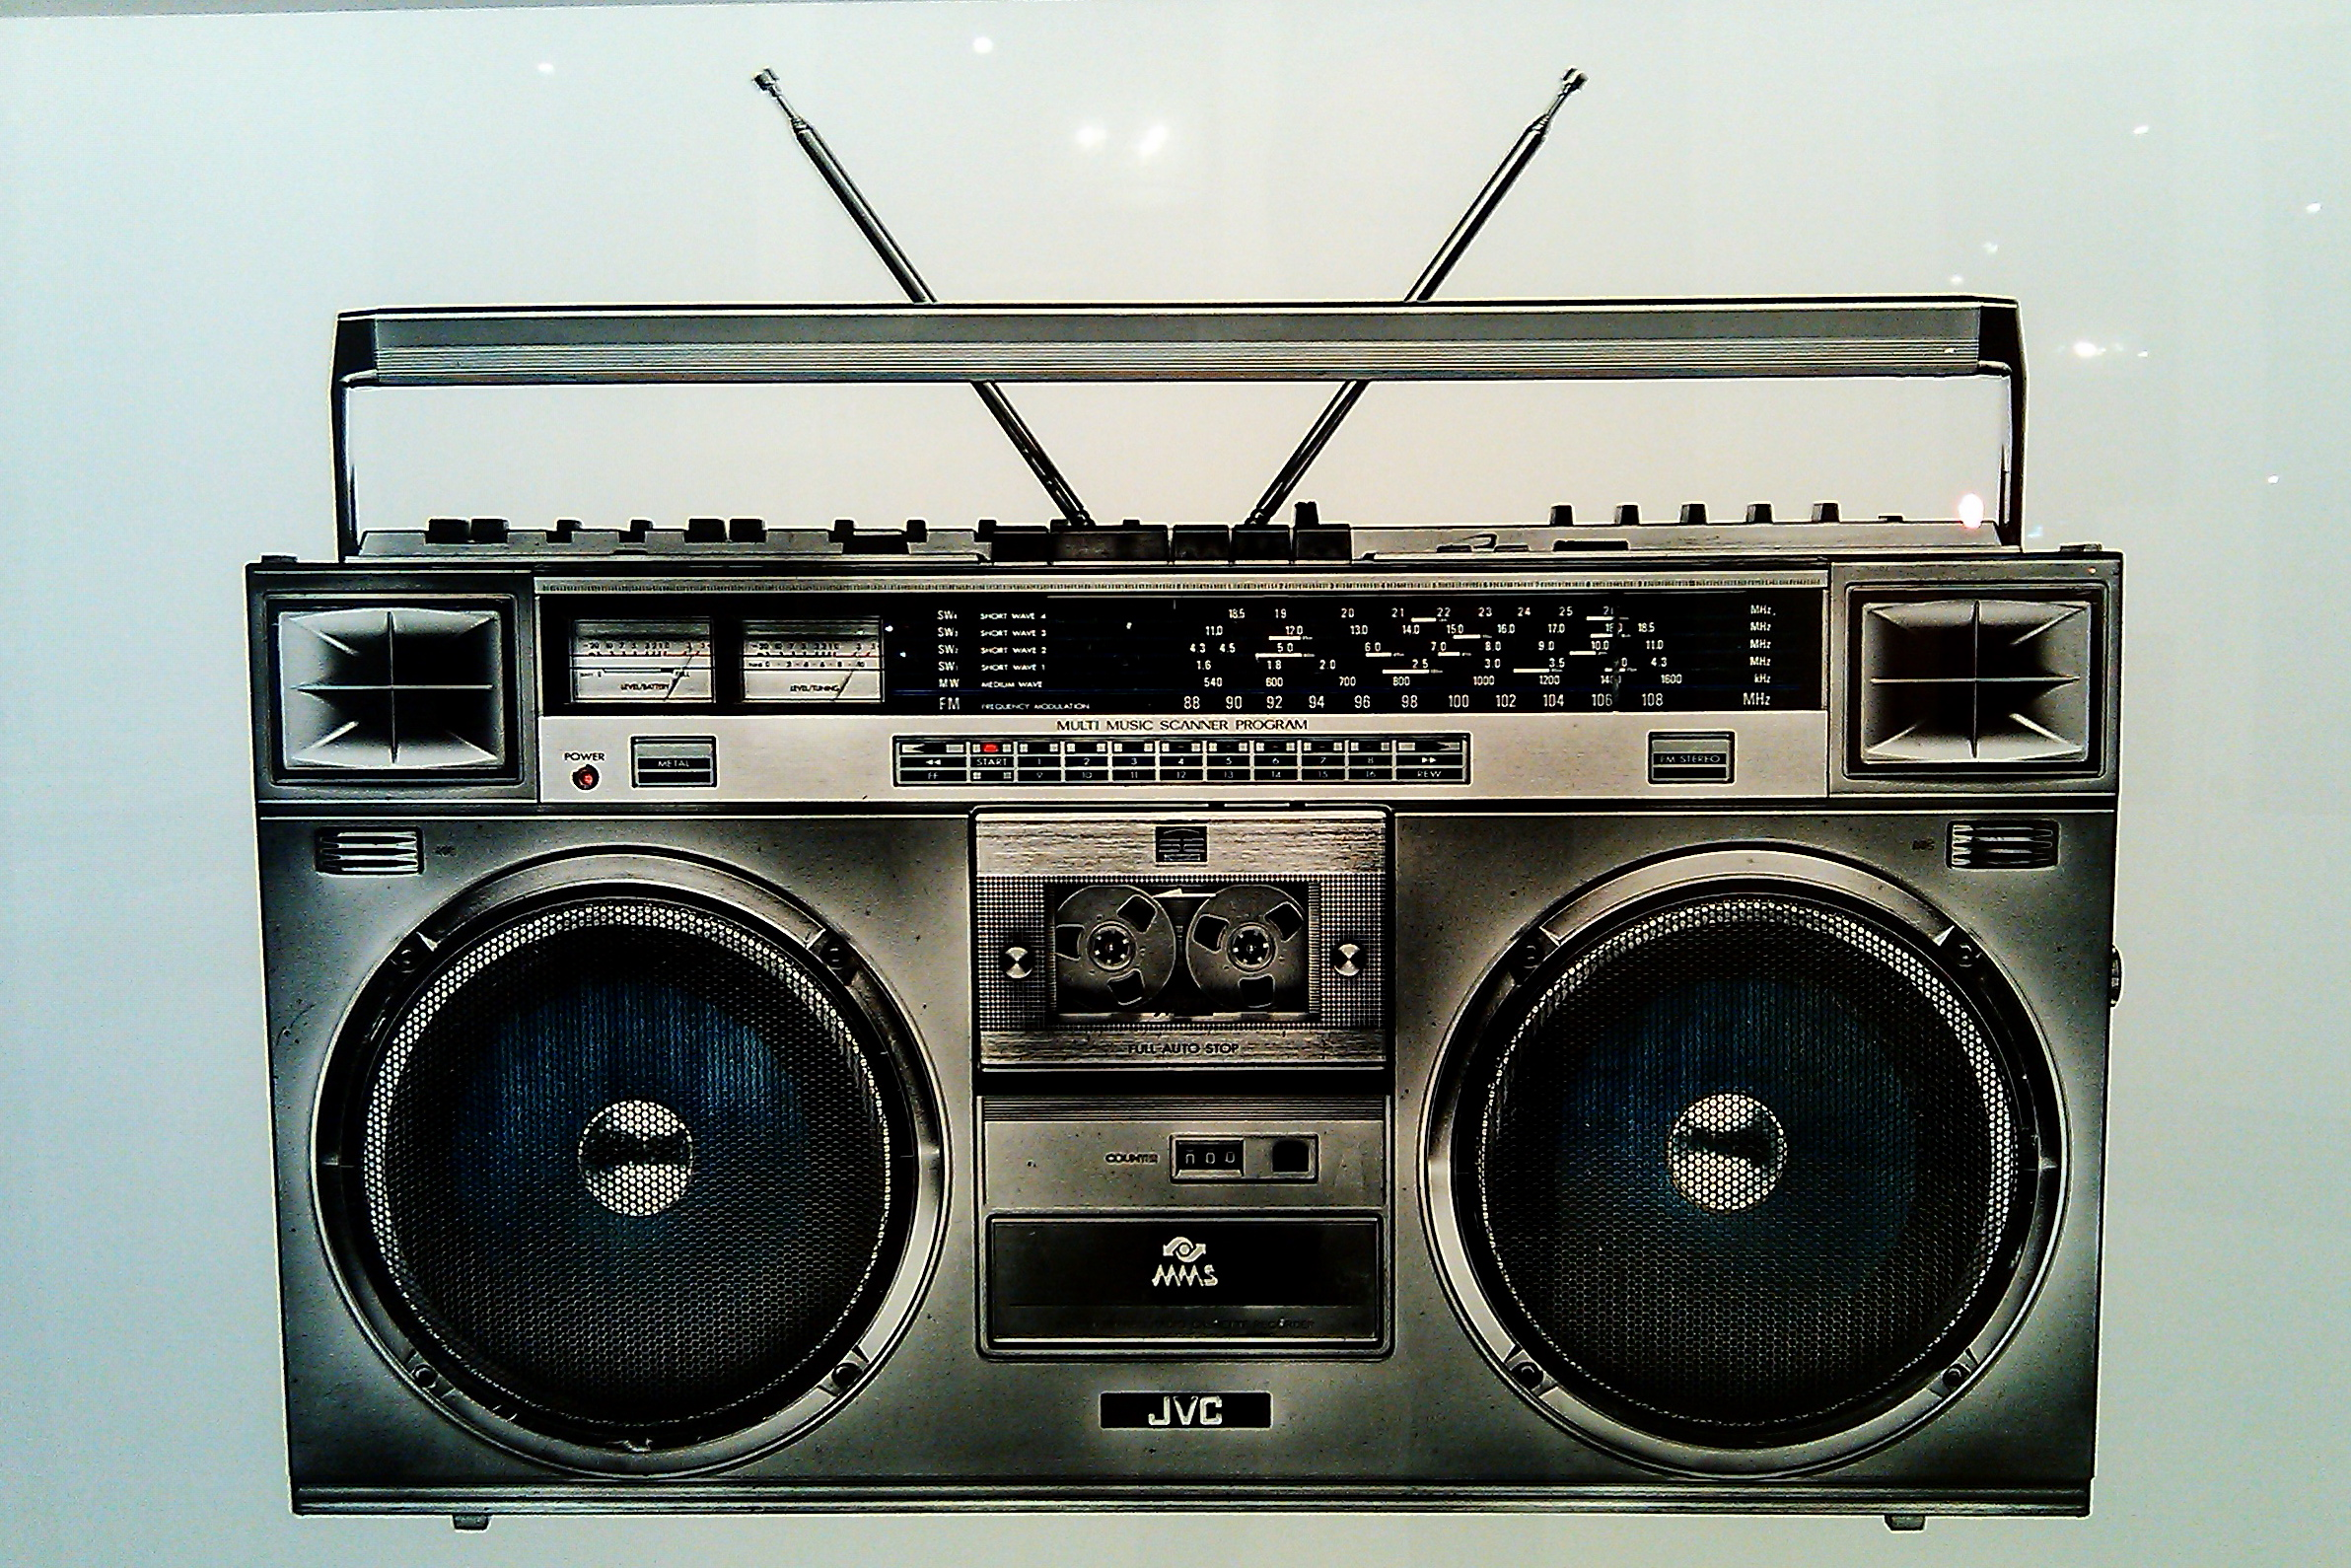 The Boombox Project by Lyle Owerko @Clic | Avenue80s NYC